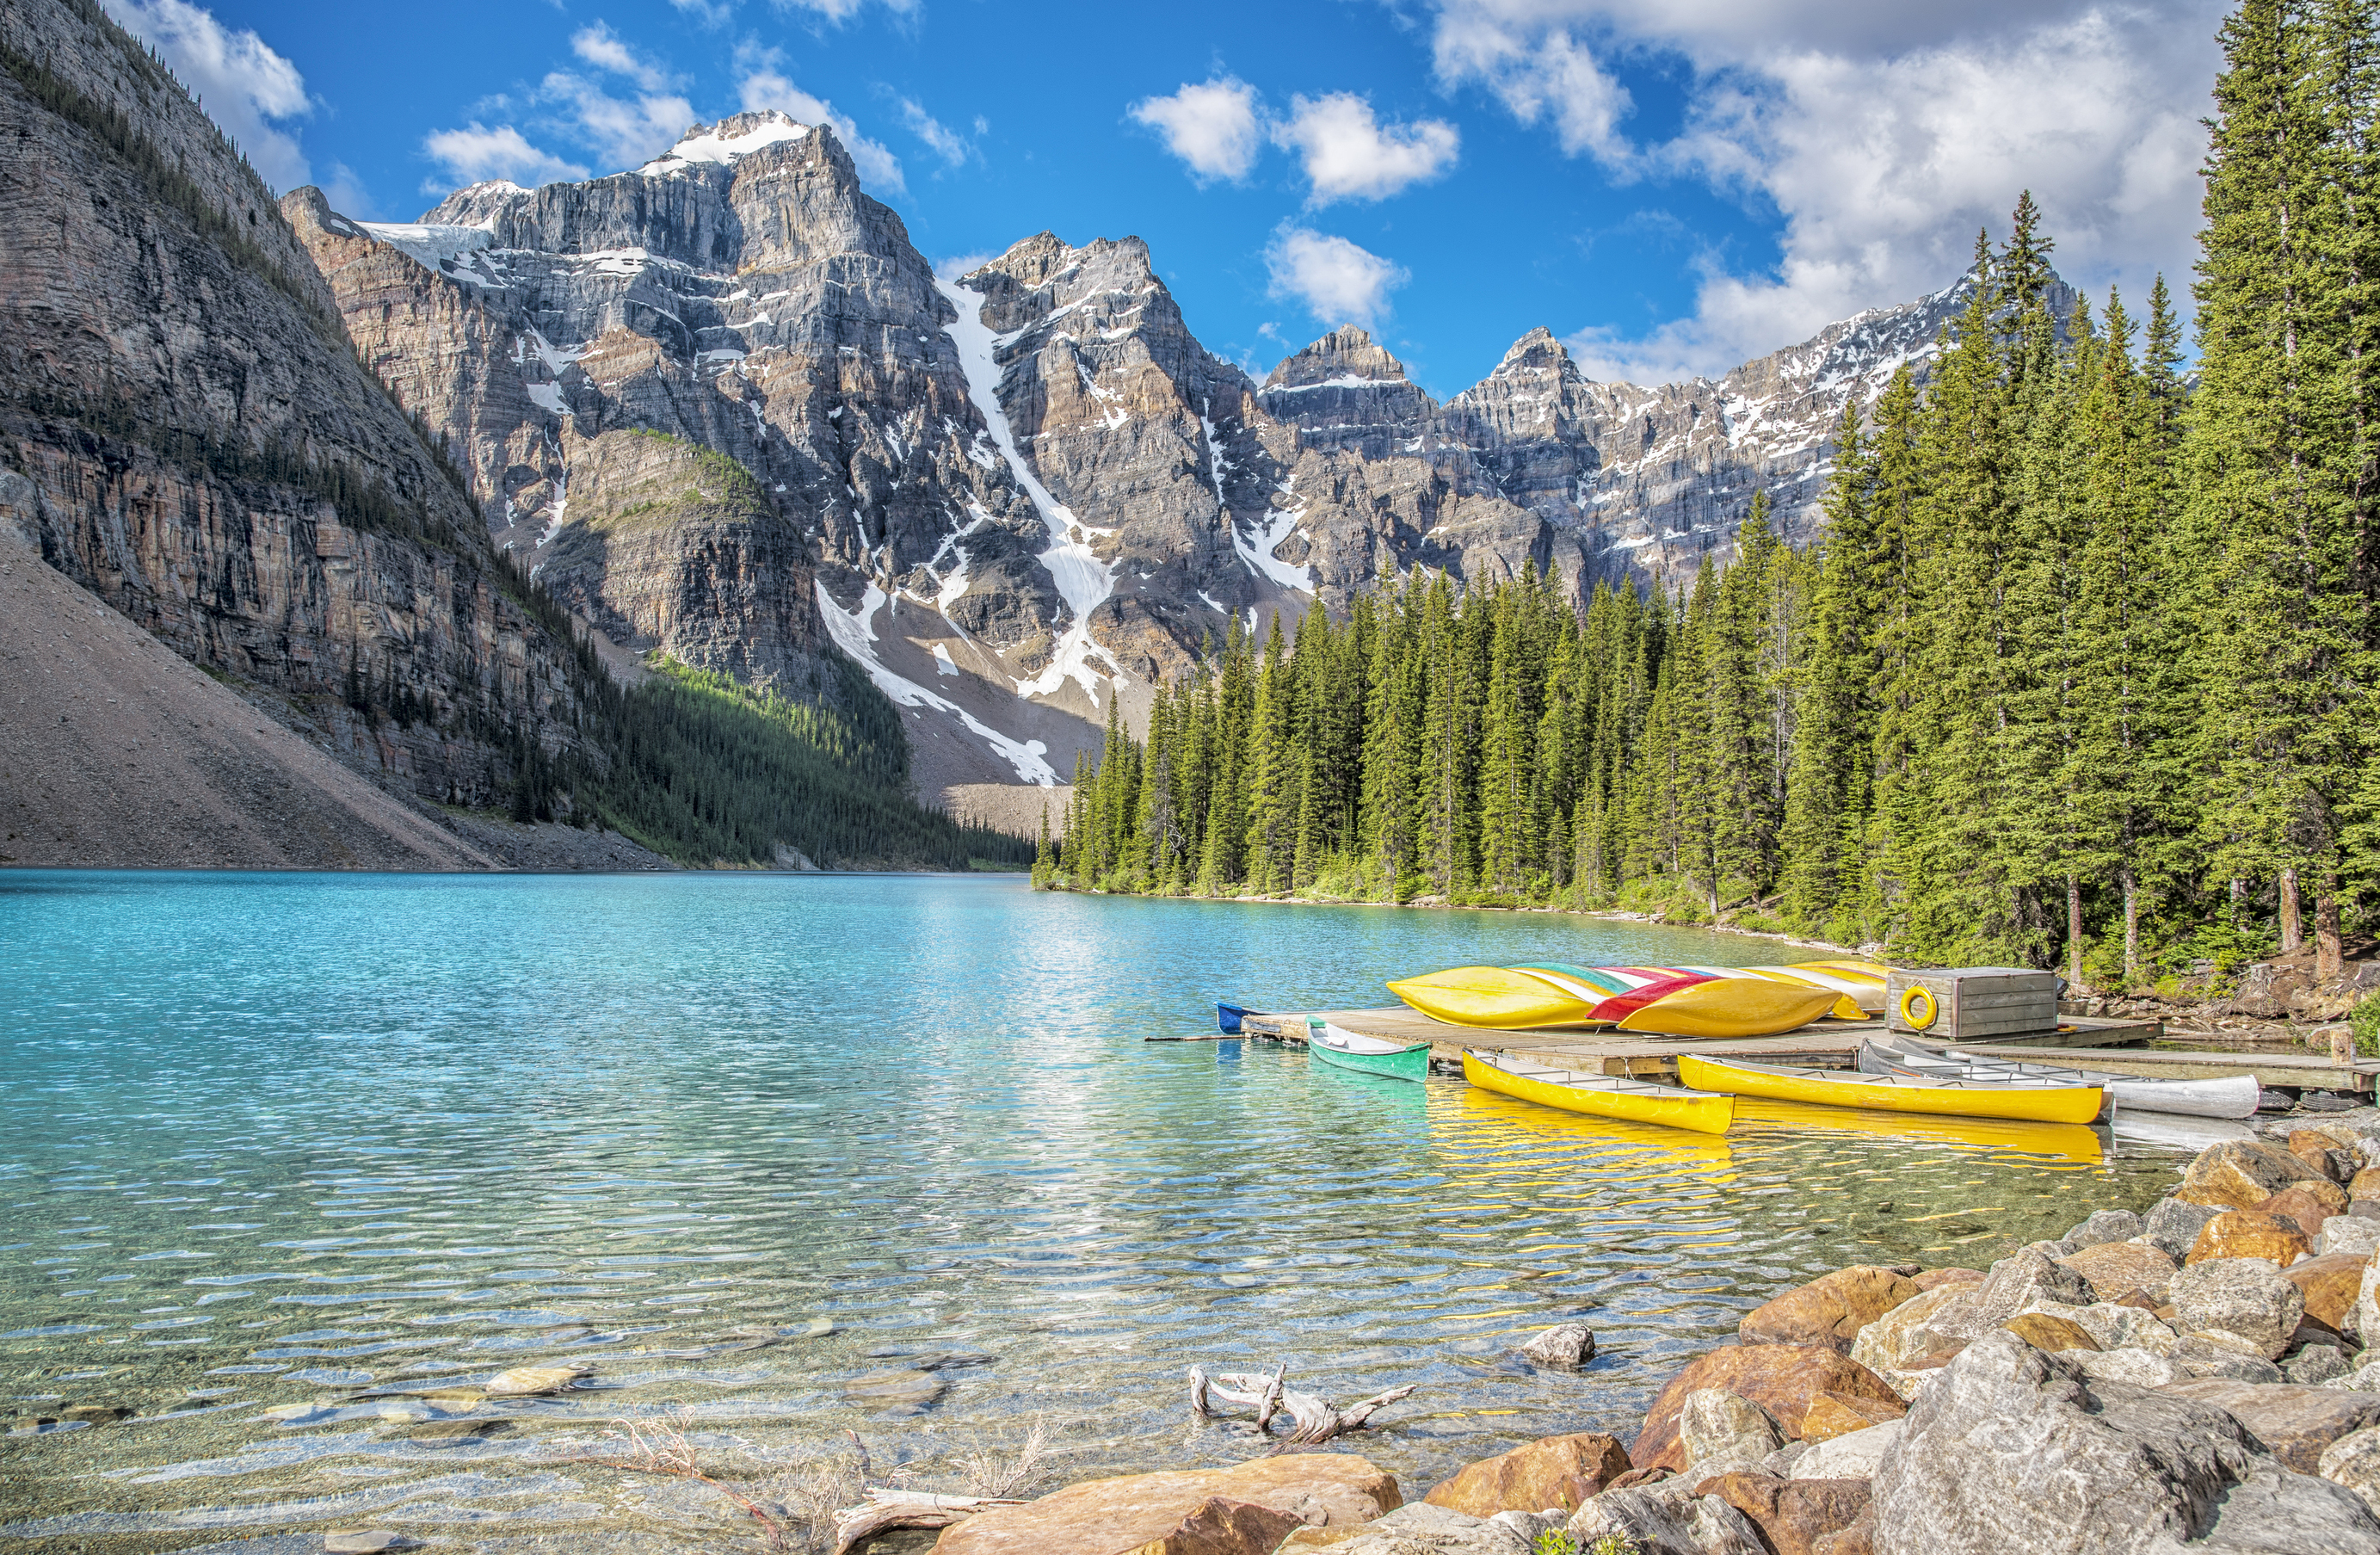 Moraine-Lake-Ten-Peaks-Banff.jpg?mtime=20180709094802#asset:102401